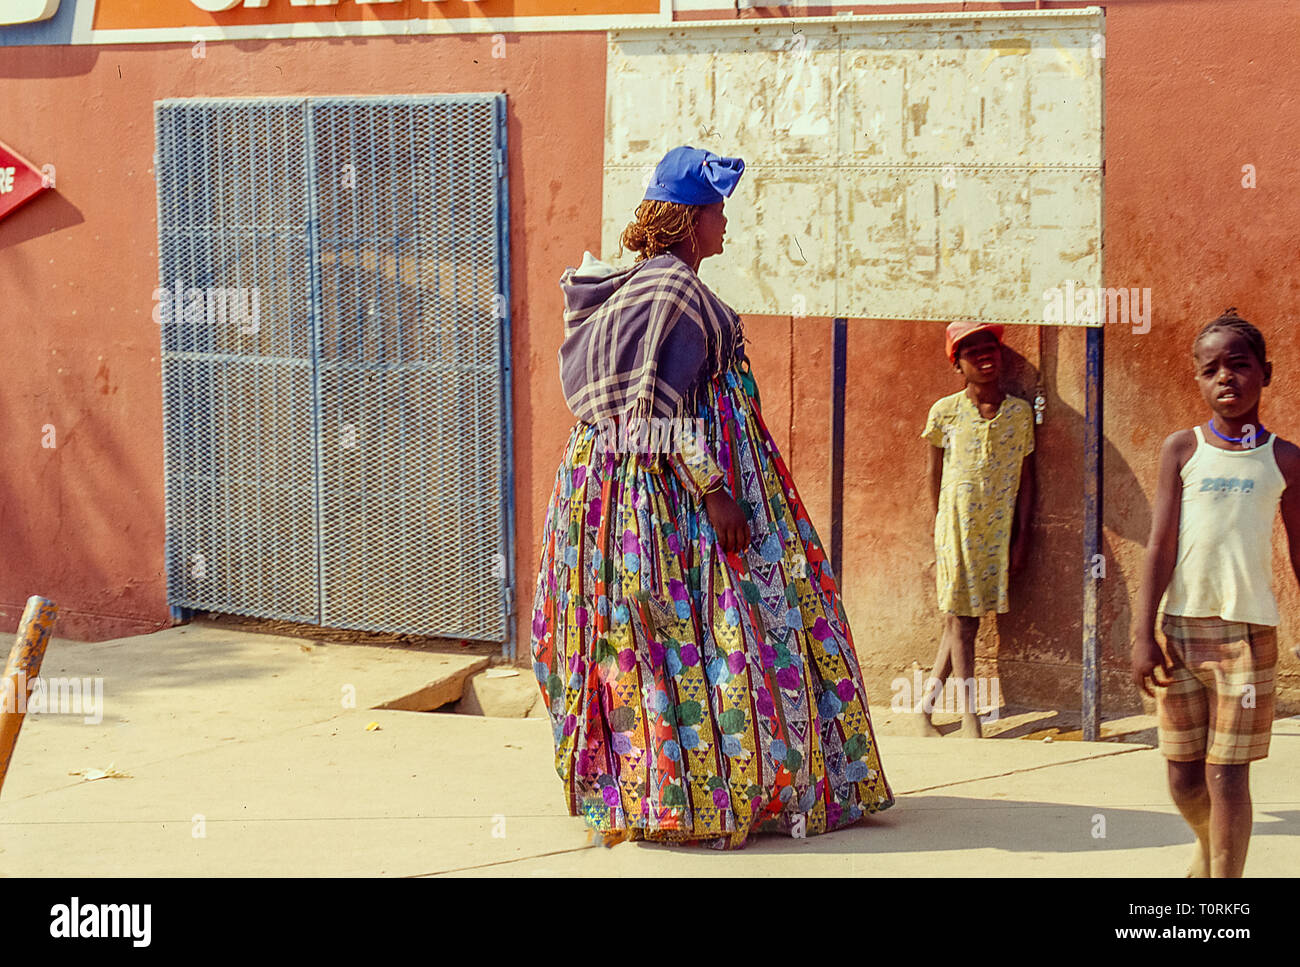 A woman of the Herero ethnicity with the traditional dress in the town of Opuwo in Namibia - Stock Image